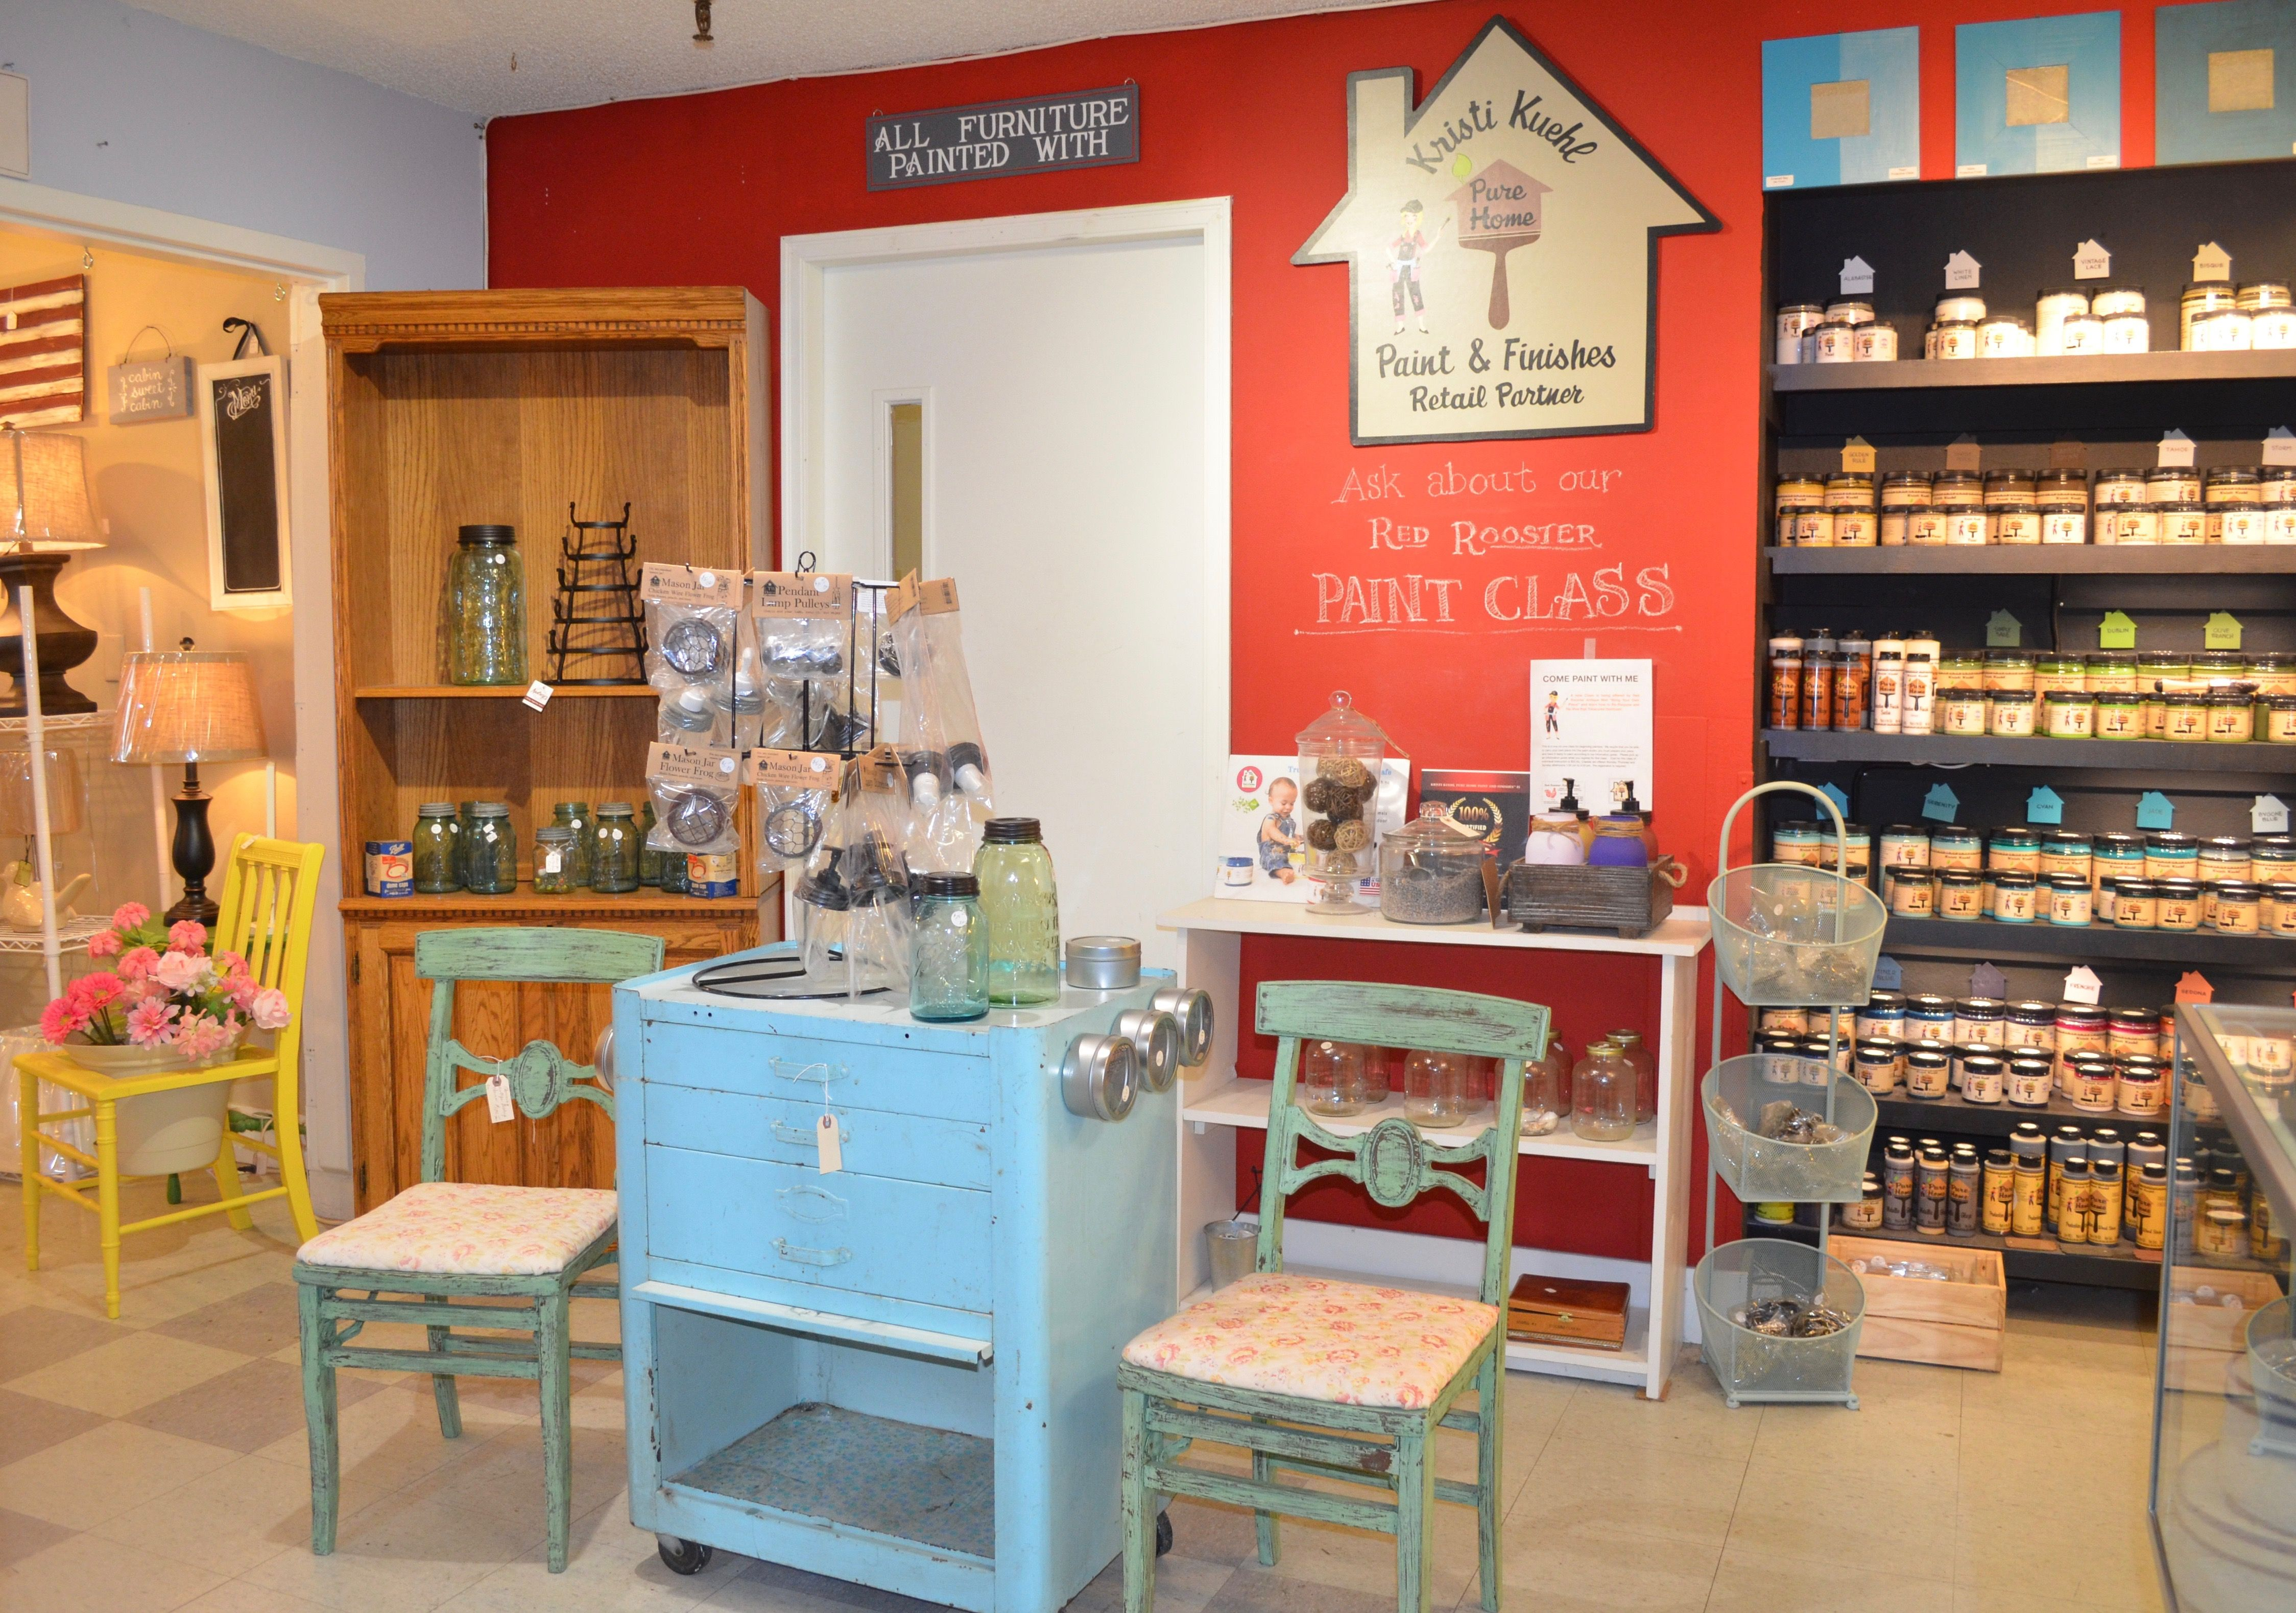 Did You Know We Carry A Non Toxic Eco Friendly Paint You Can Paint Wood Metal Glass And Fabric Cottage Furniture Furniture Gifts Eco Friendly Paint